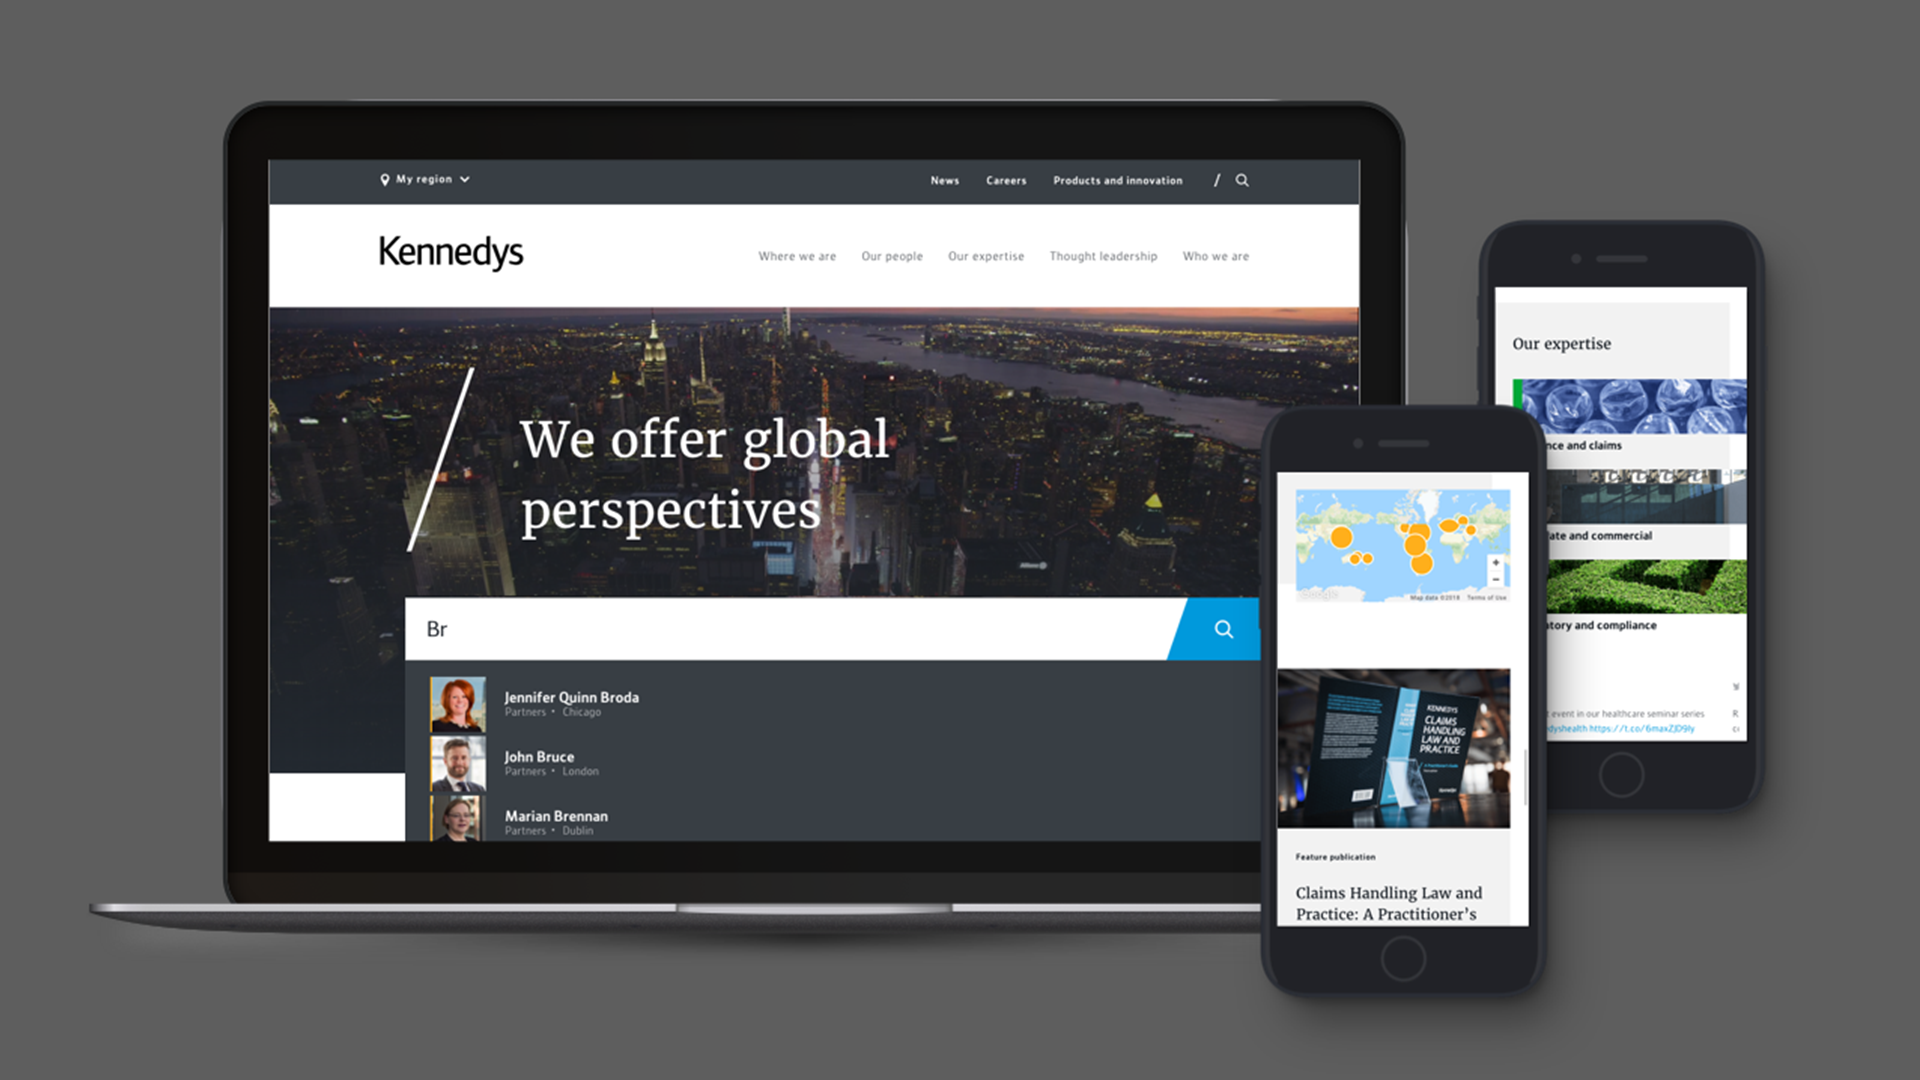 online crative agency kennedys